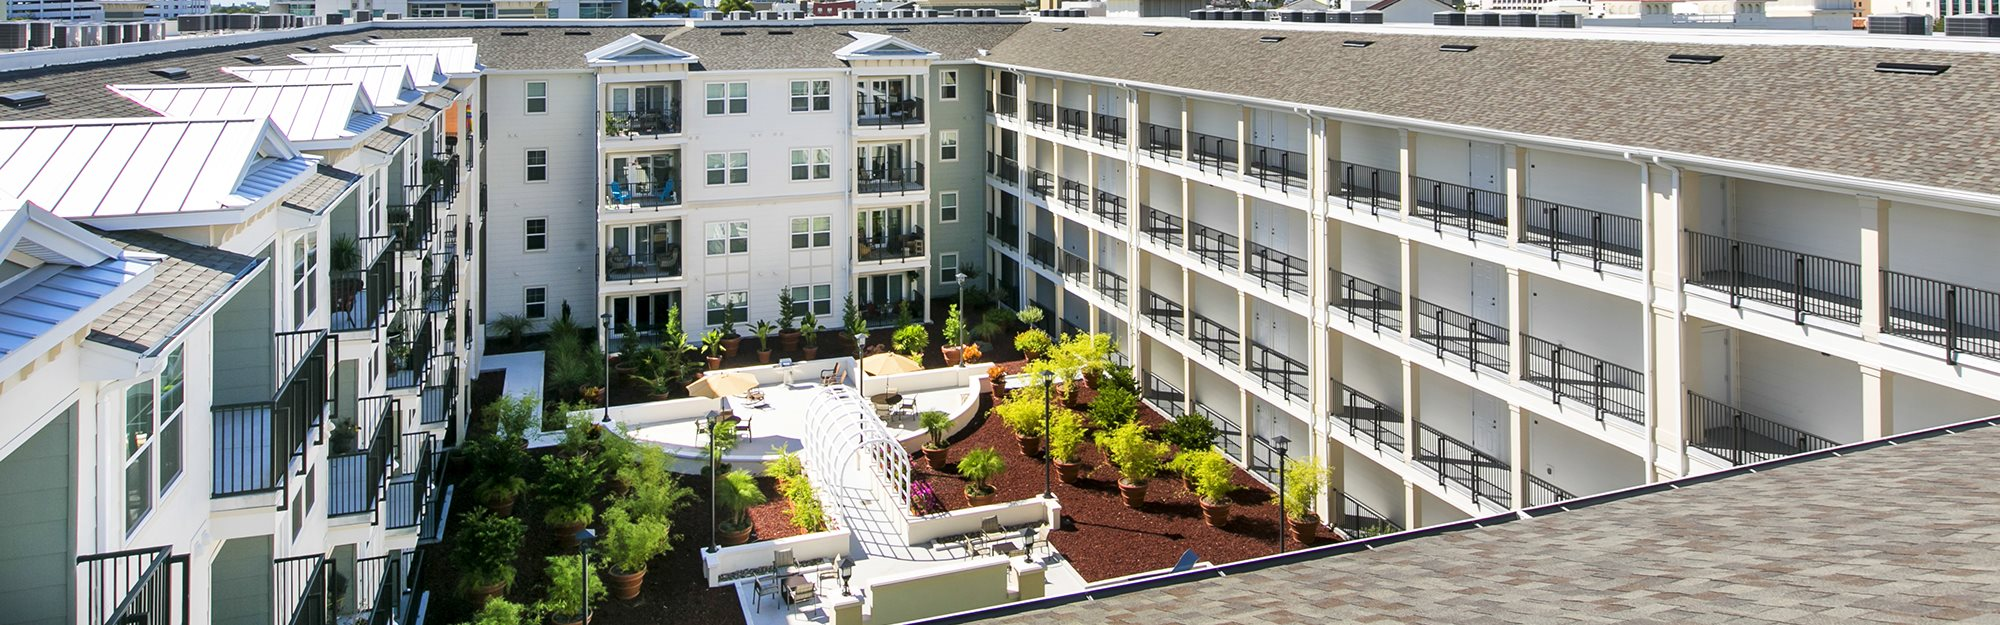 Harbour's Edge Senior Apartments for rent in St. Petersburg, FL. Make this community your new home or visit other Concord Rents communities at ConcordRents.com. Aerial